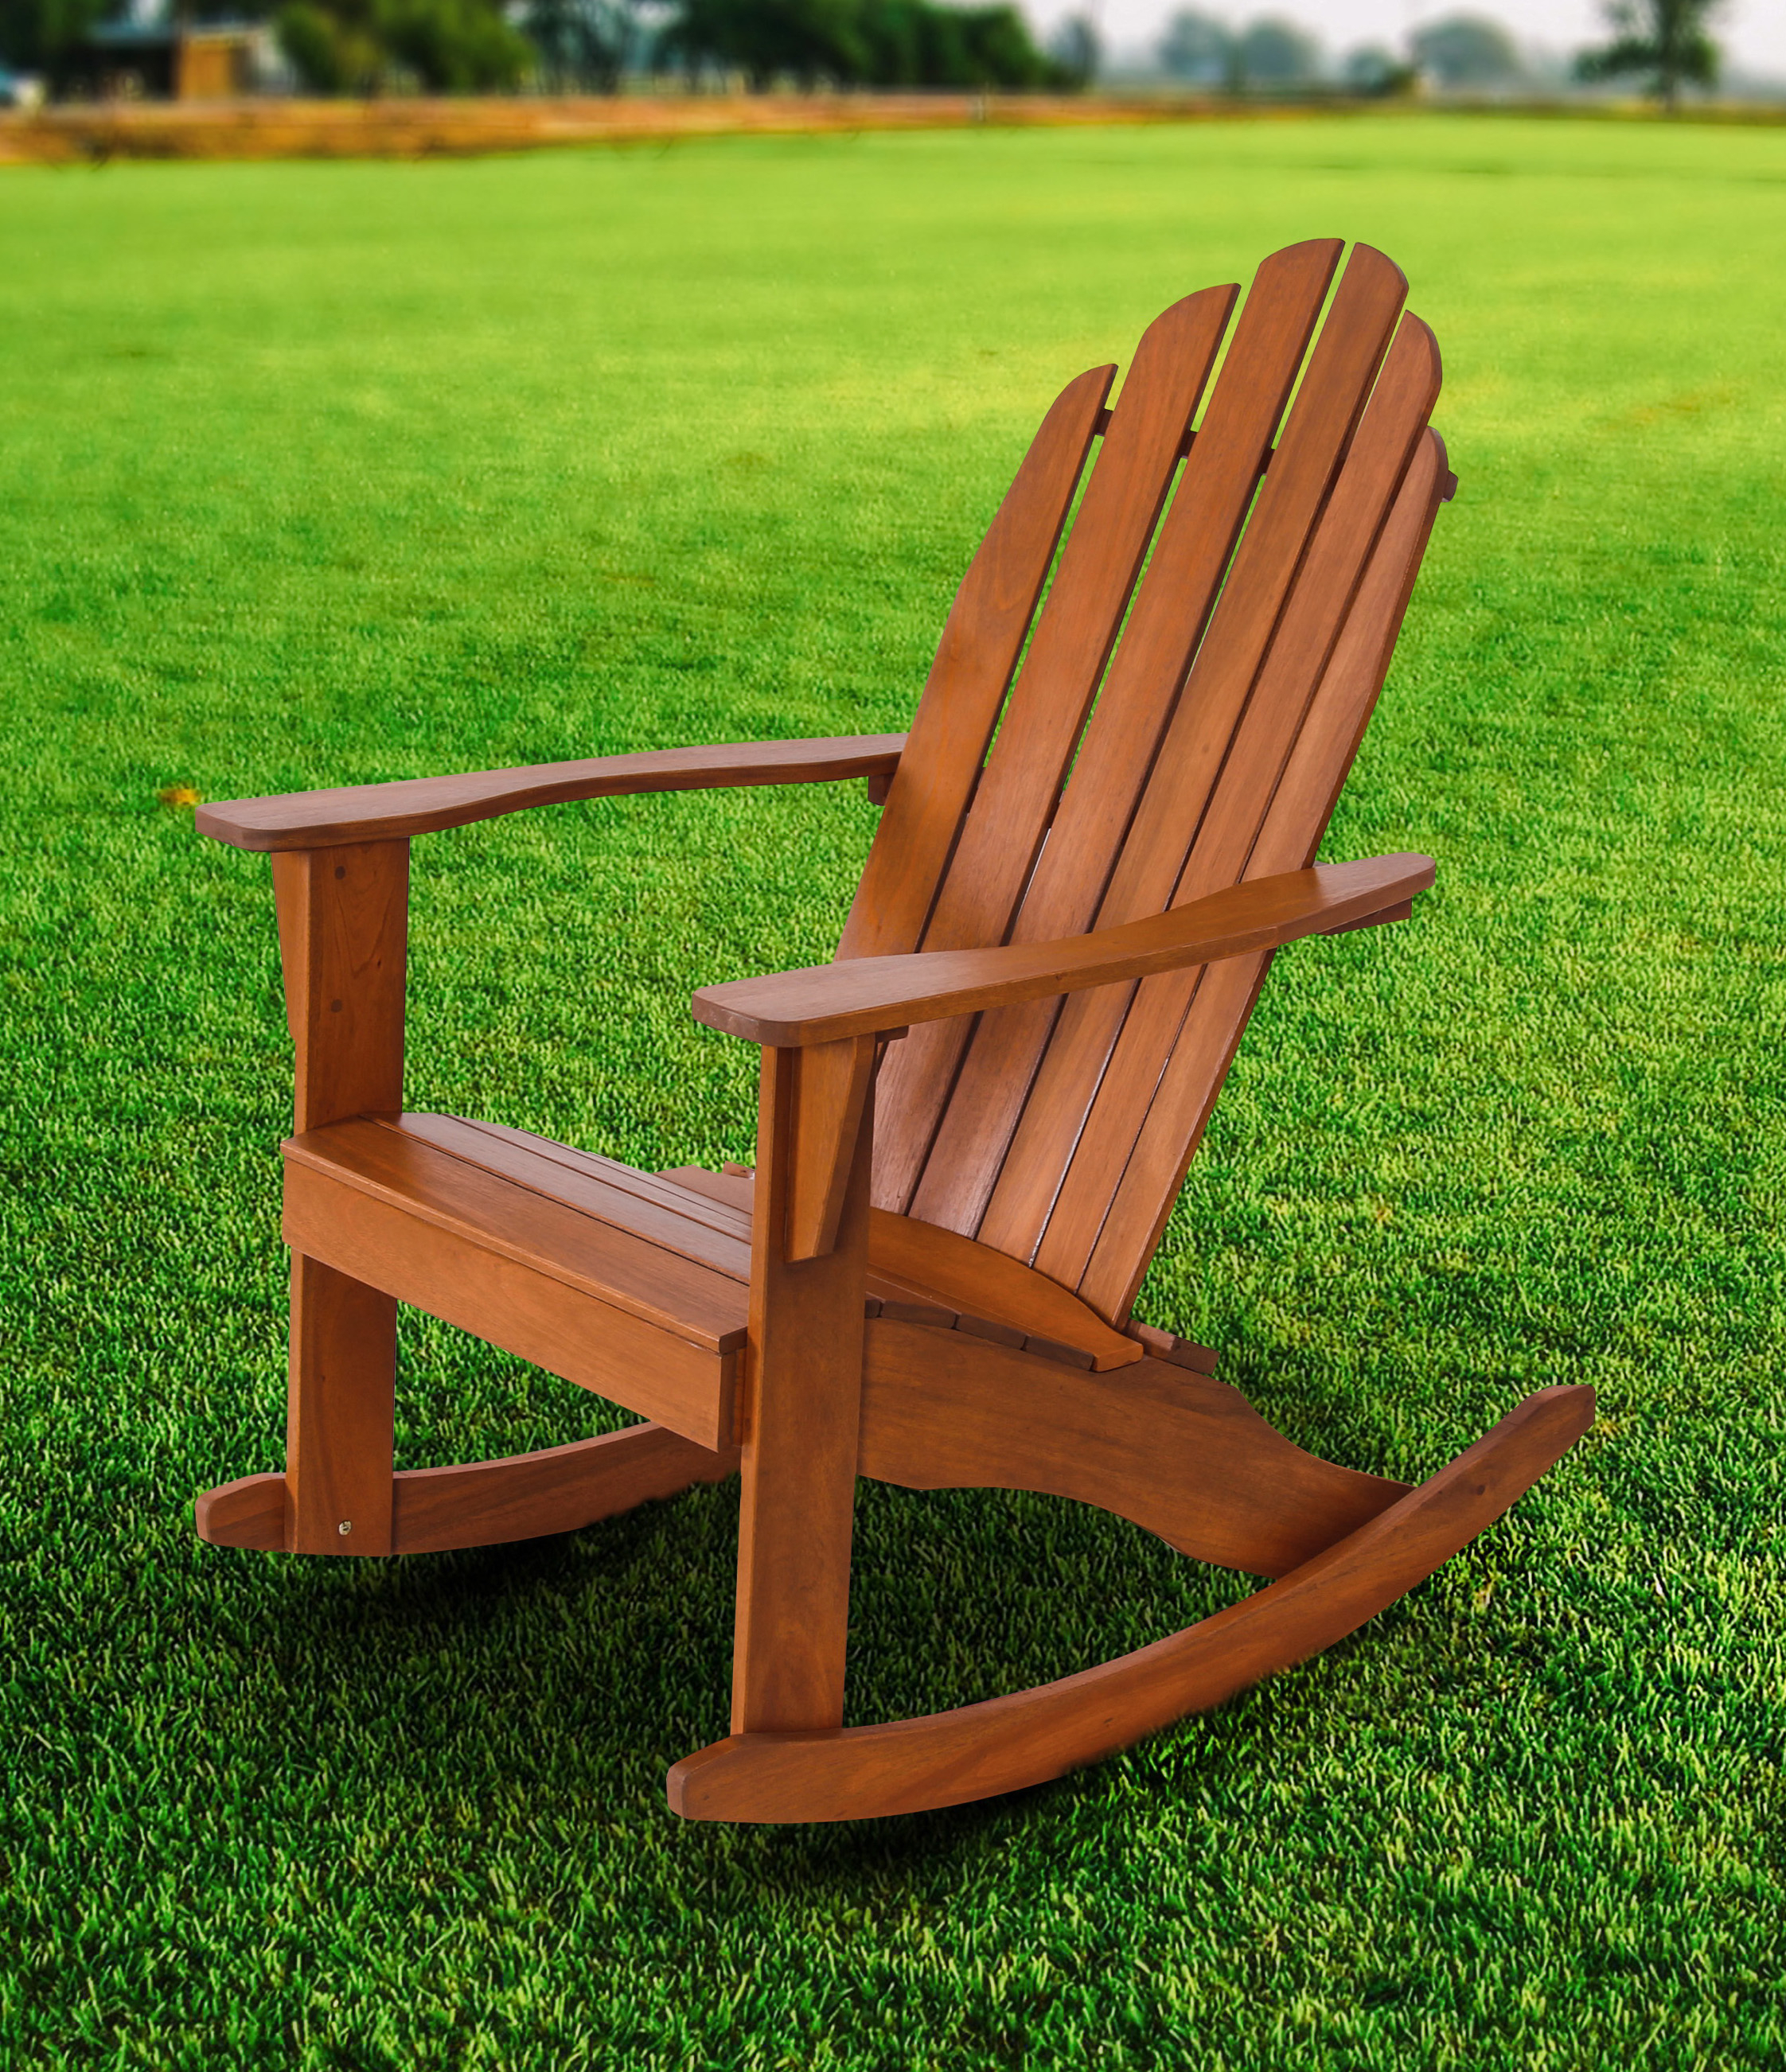 Inspiration about Mainstays Wood Adirondack Rocking Chair, Natural For Traditional Style Wooden Rocking Chairs With Contoured Seat, Black (#12 of 20)